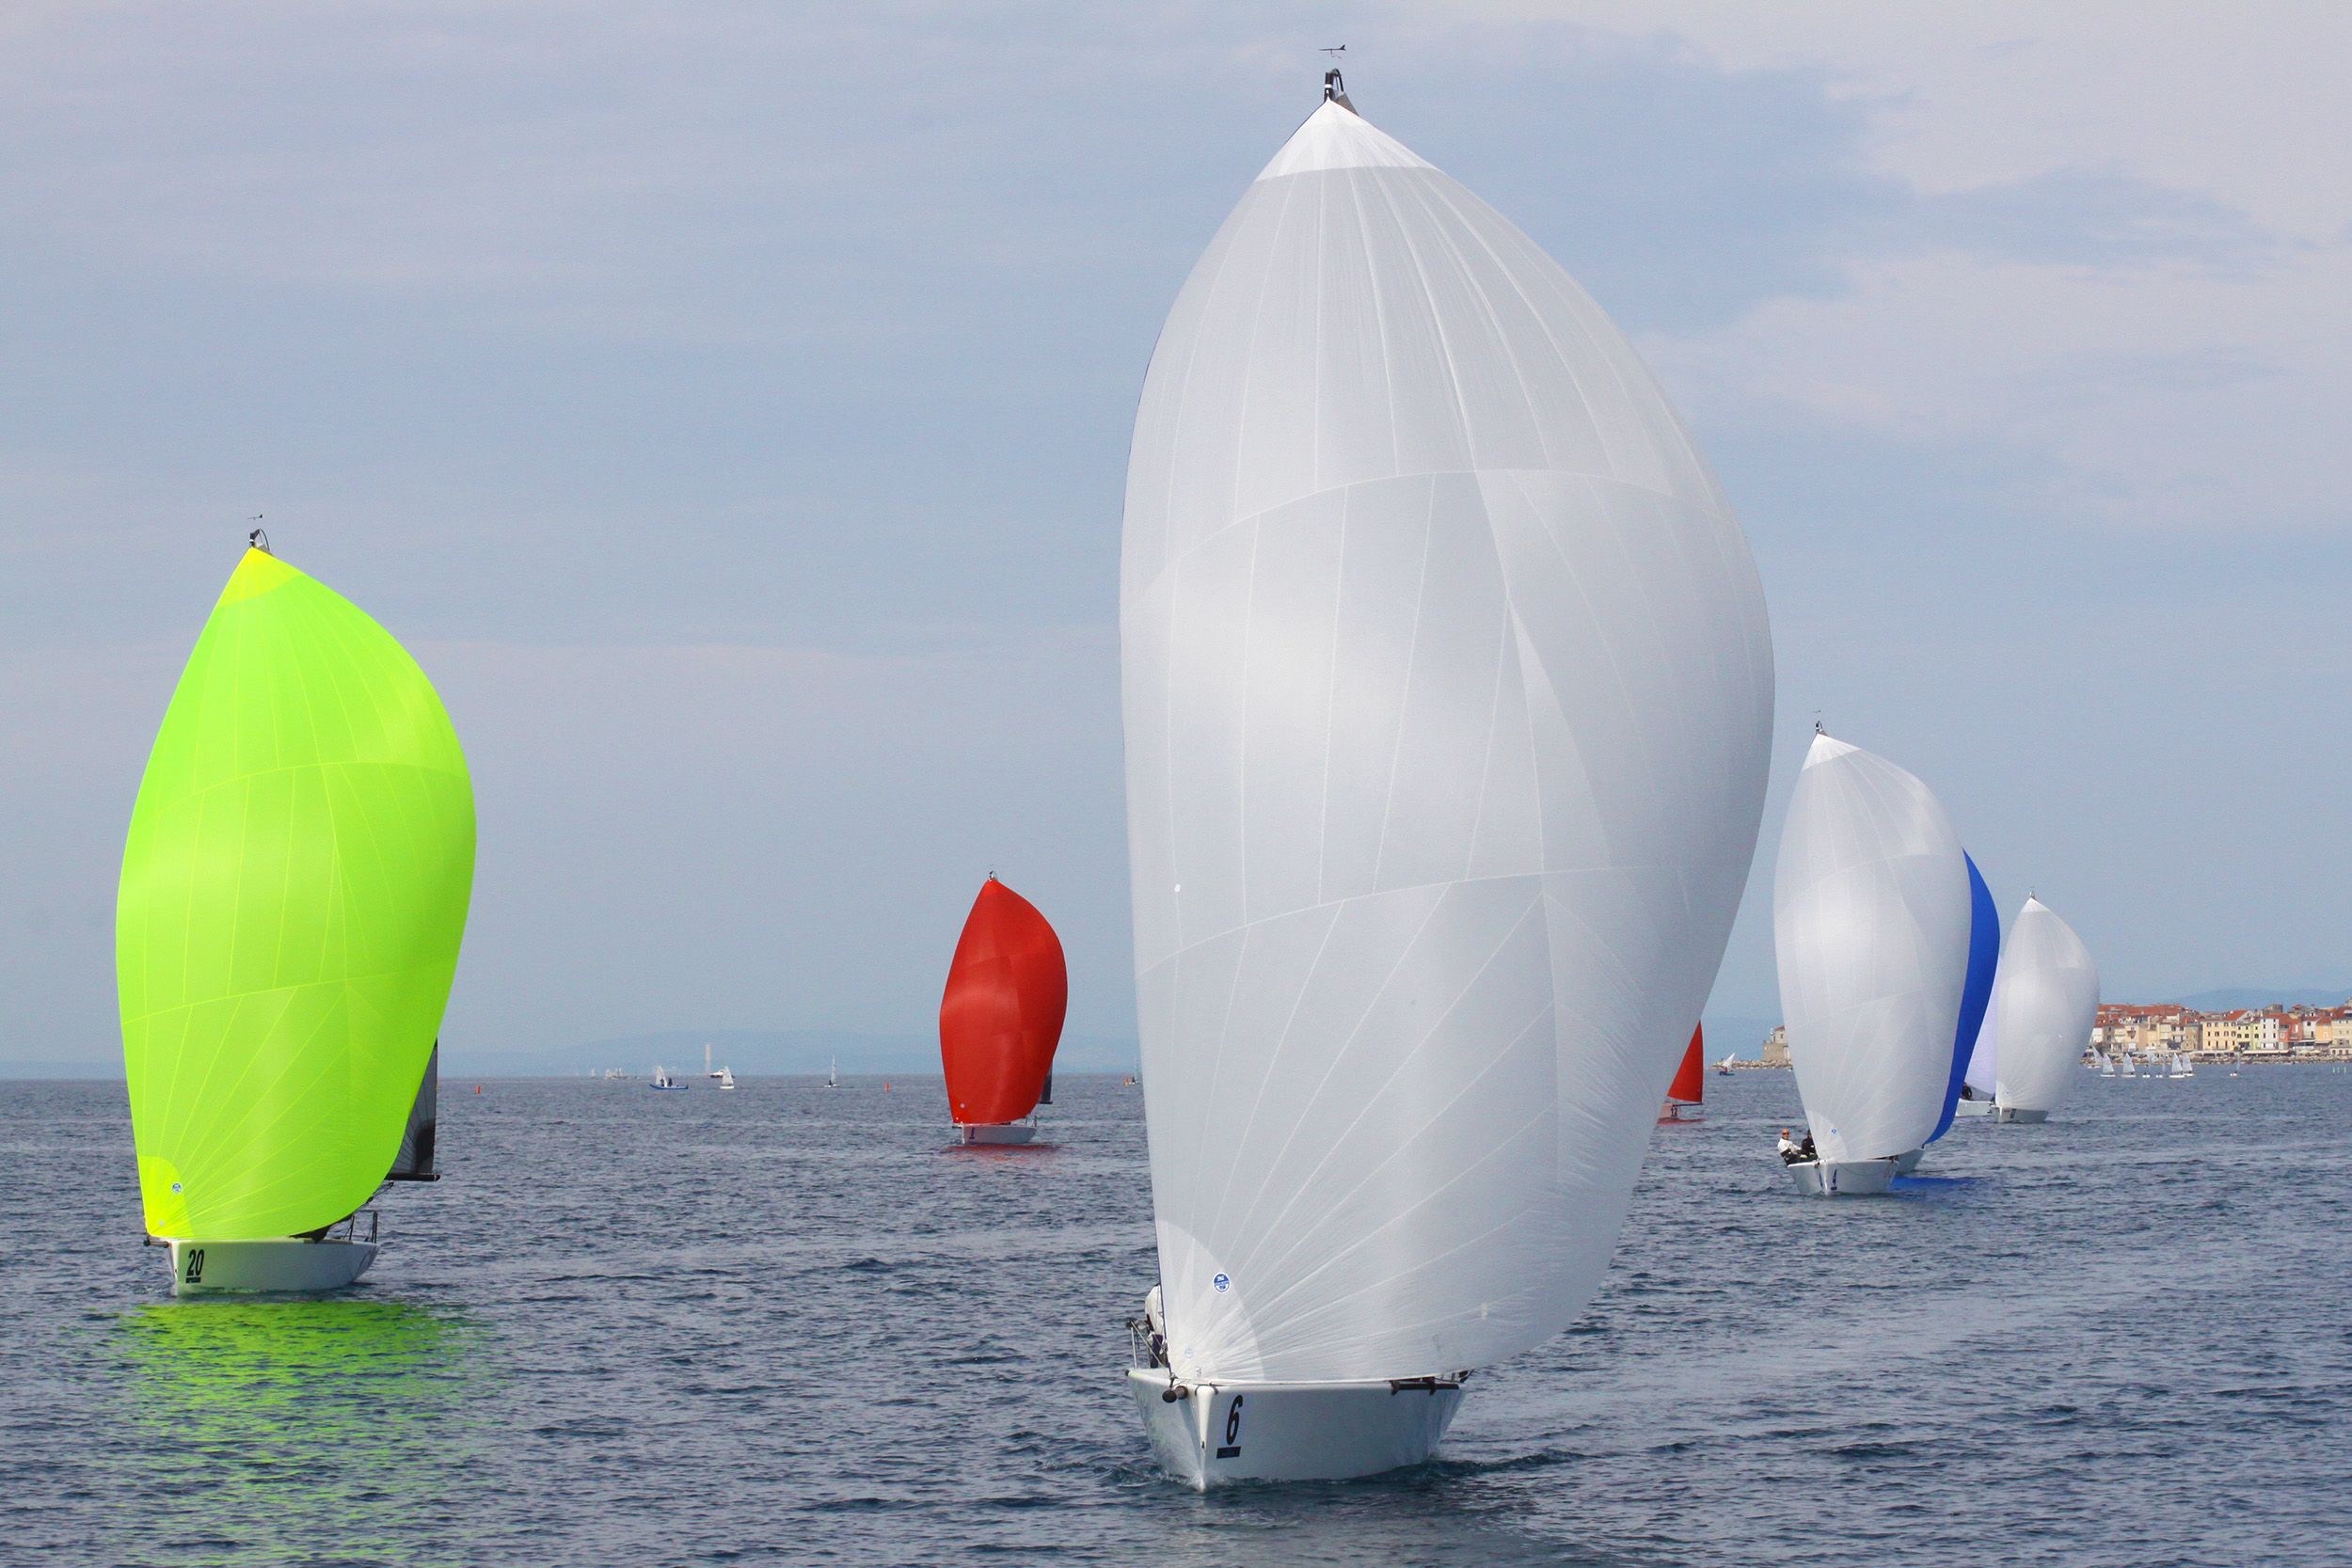 Marina Portorož Melges 24 Regatta is only a month away!